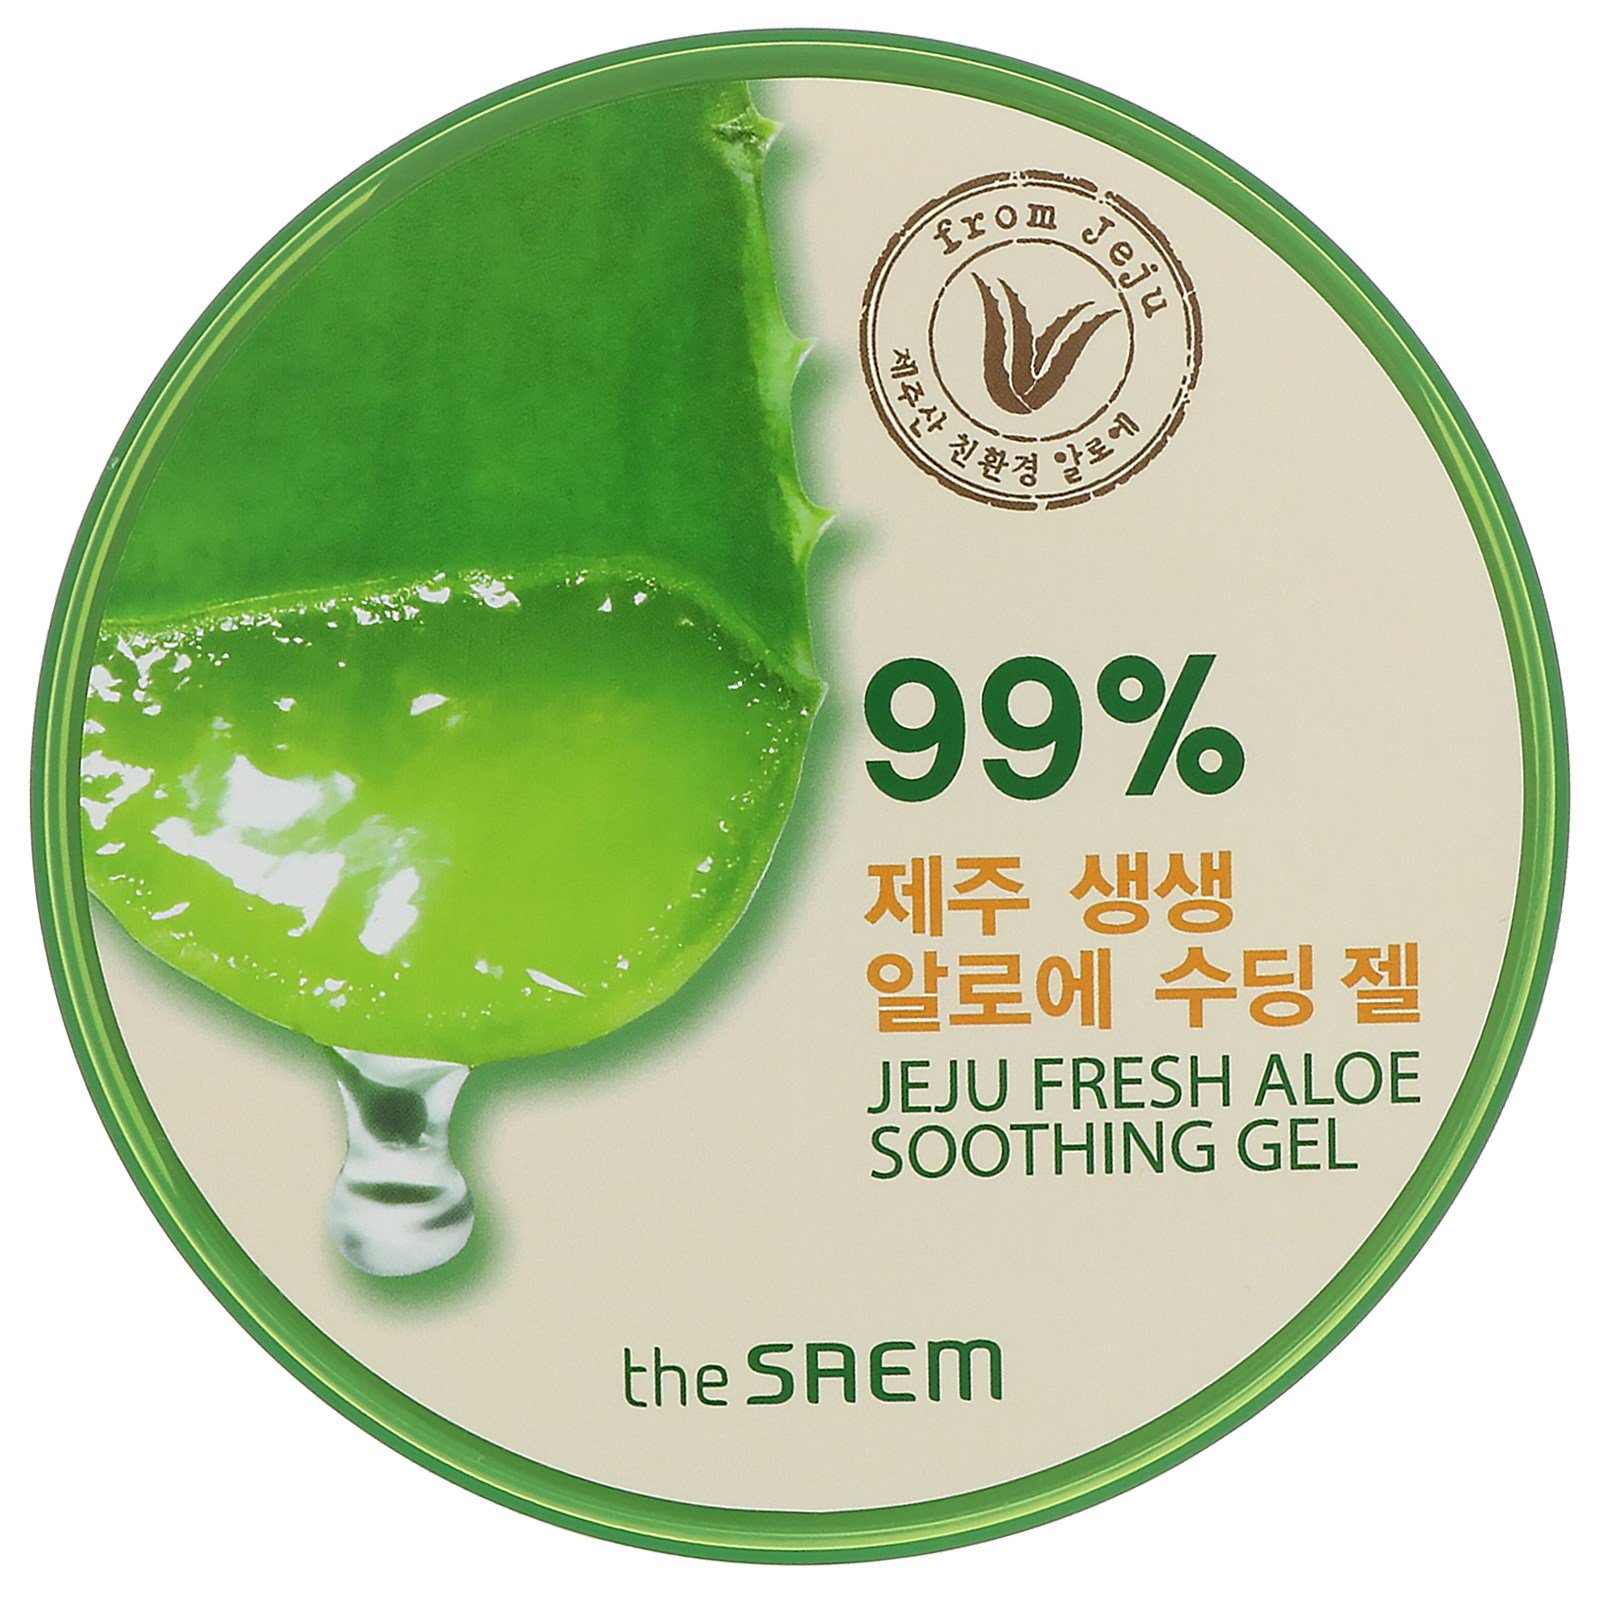 The Saem Jeju Fresh 99% Aloe Soothing Gel